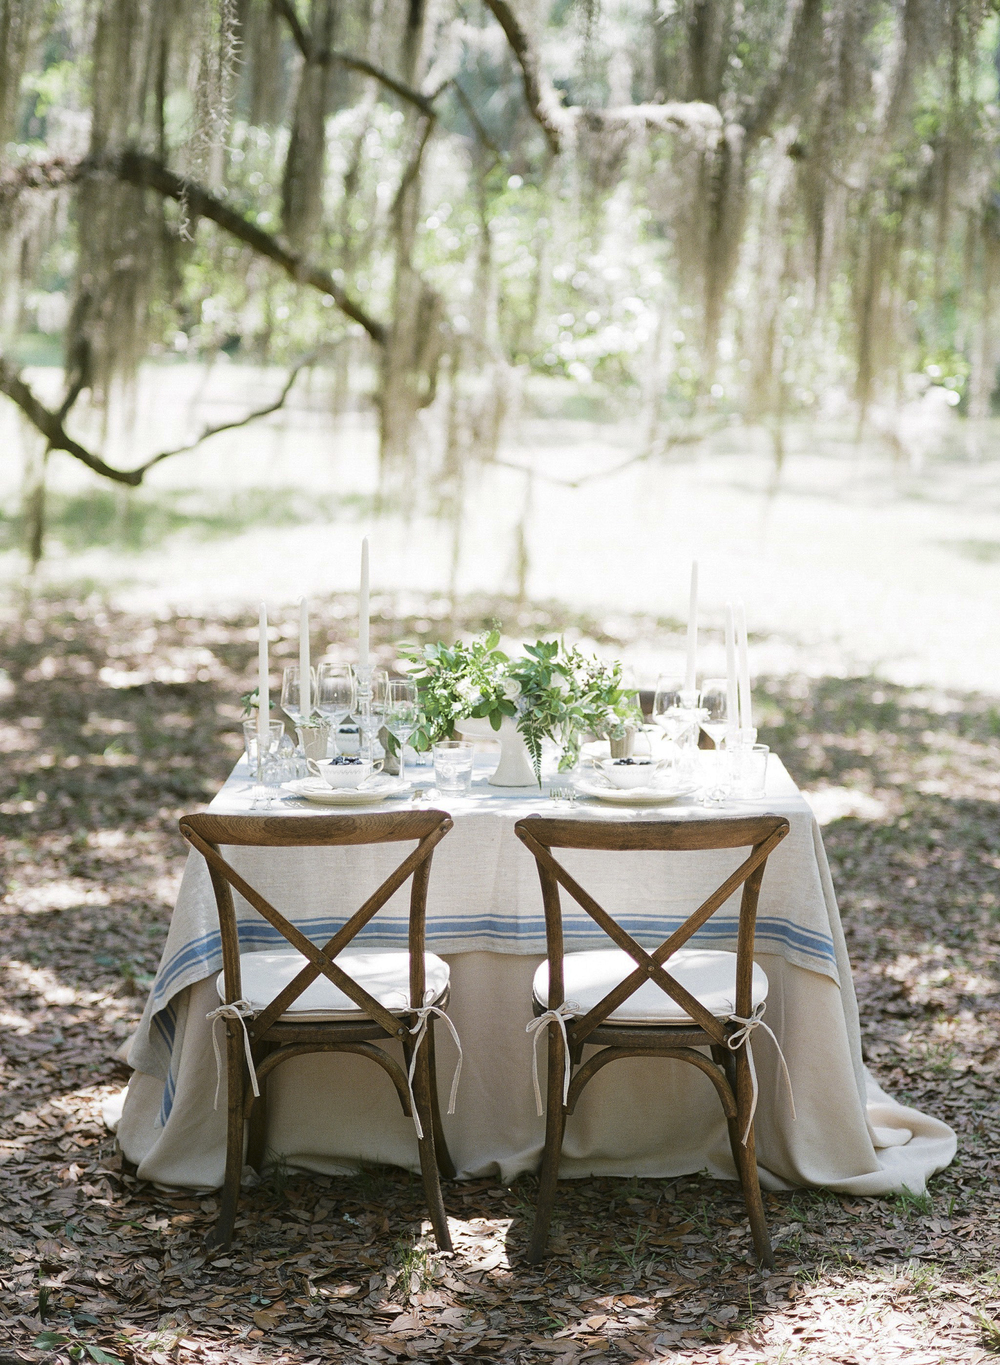 Wormsloe Wonderlust  - image via  Ashley Seawell Photography